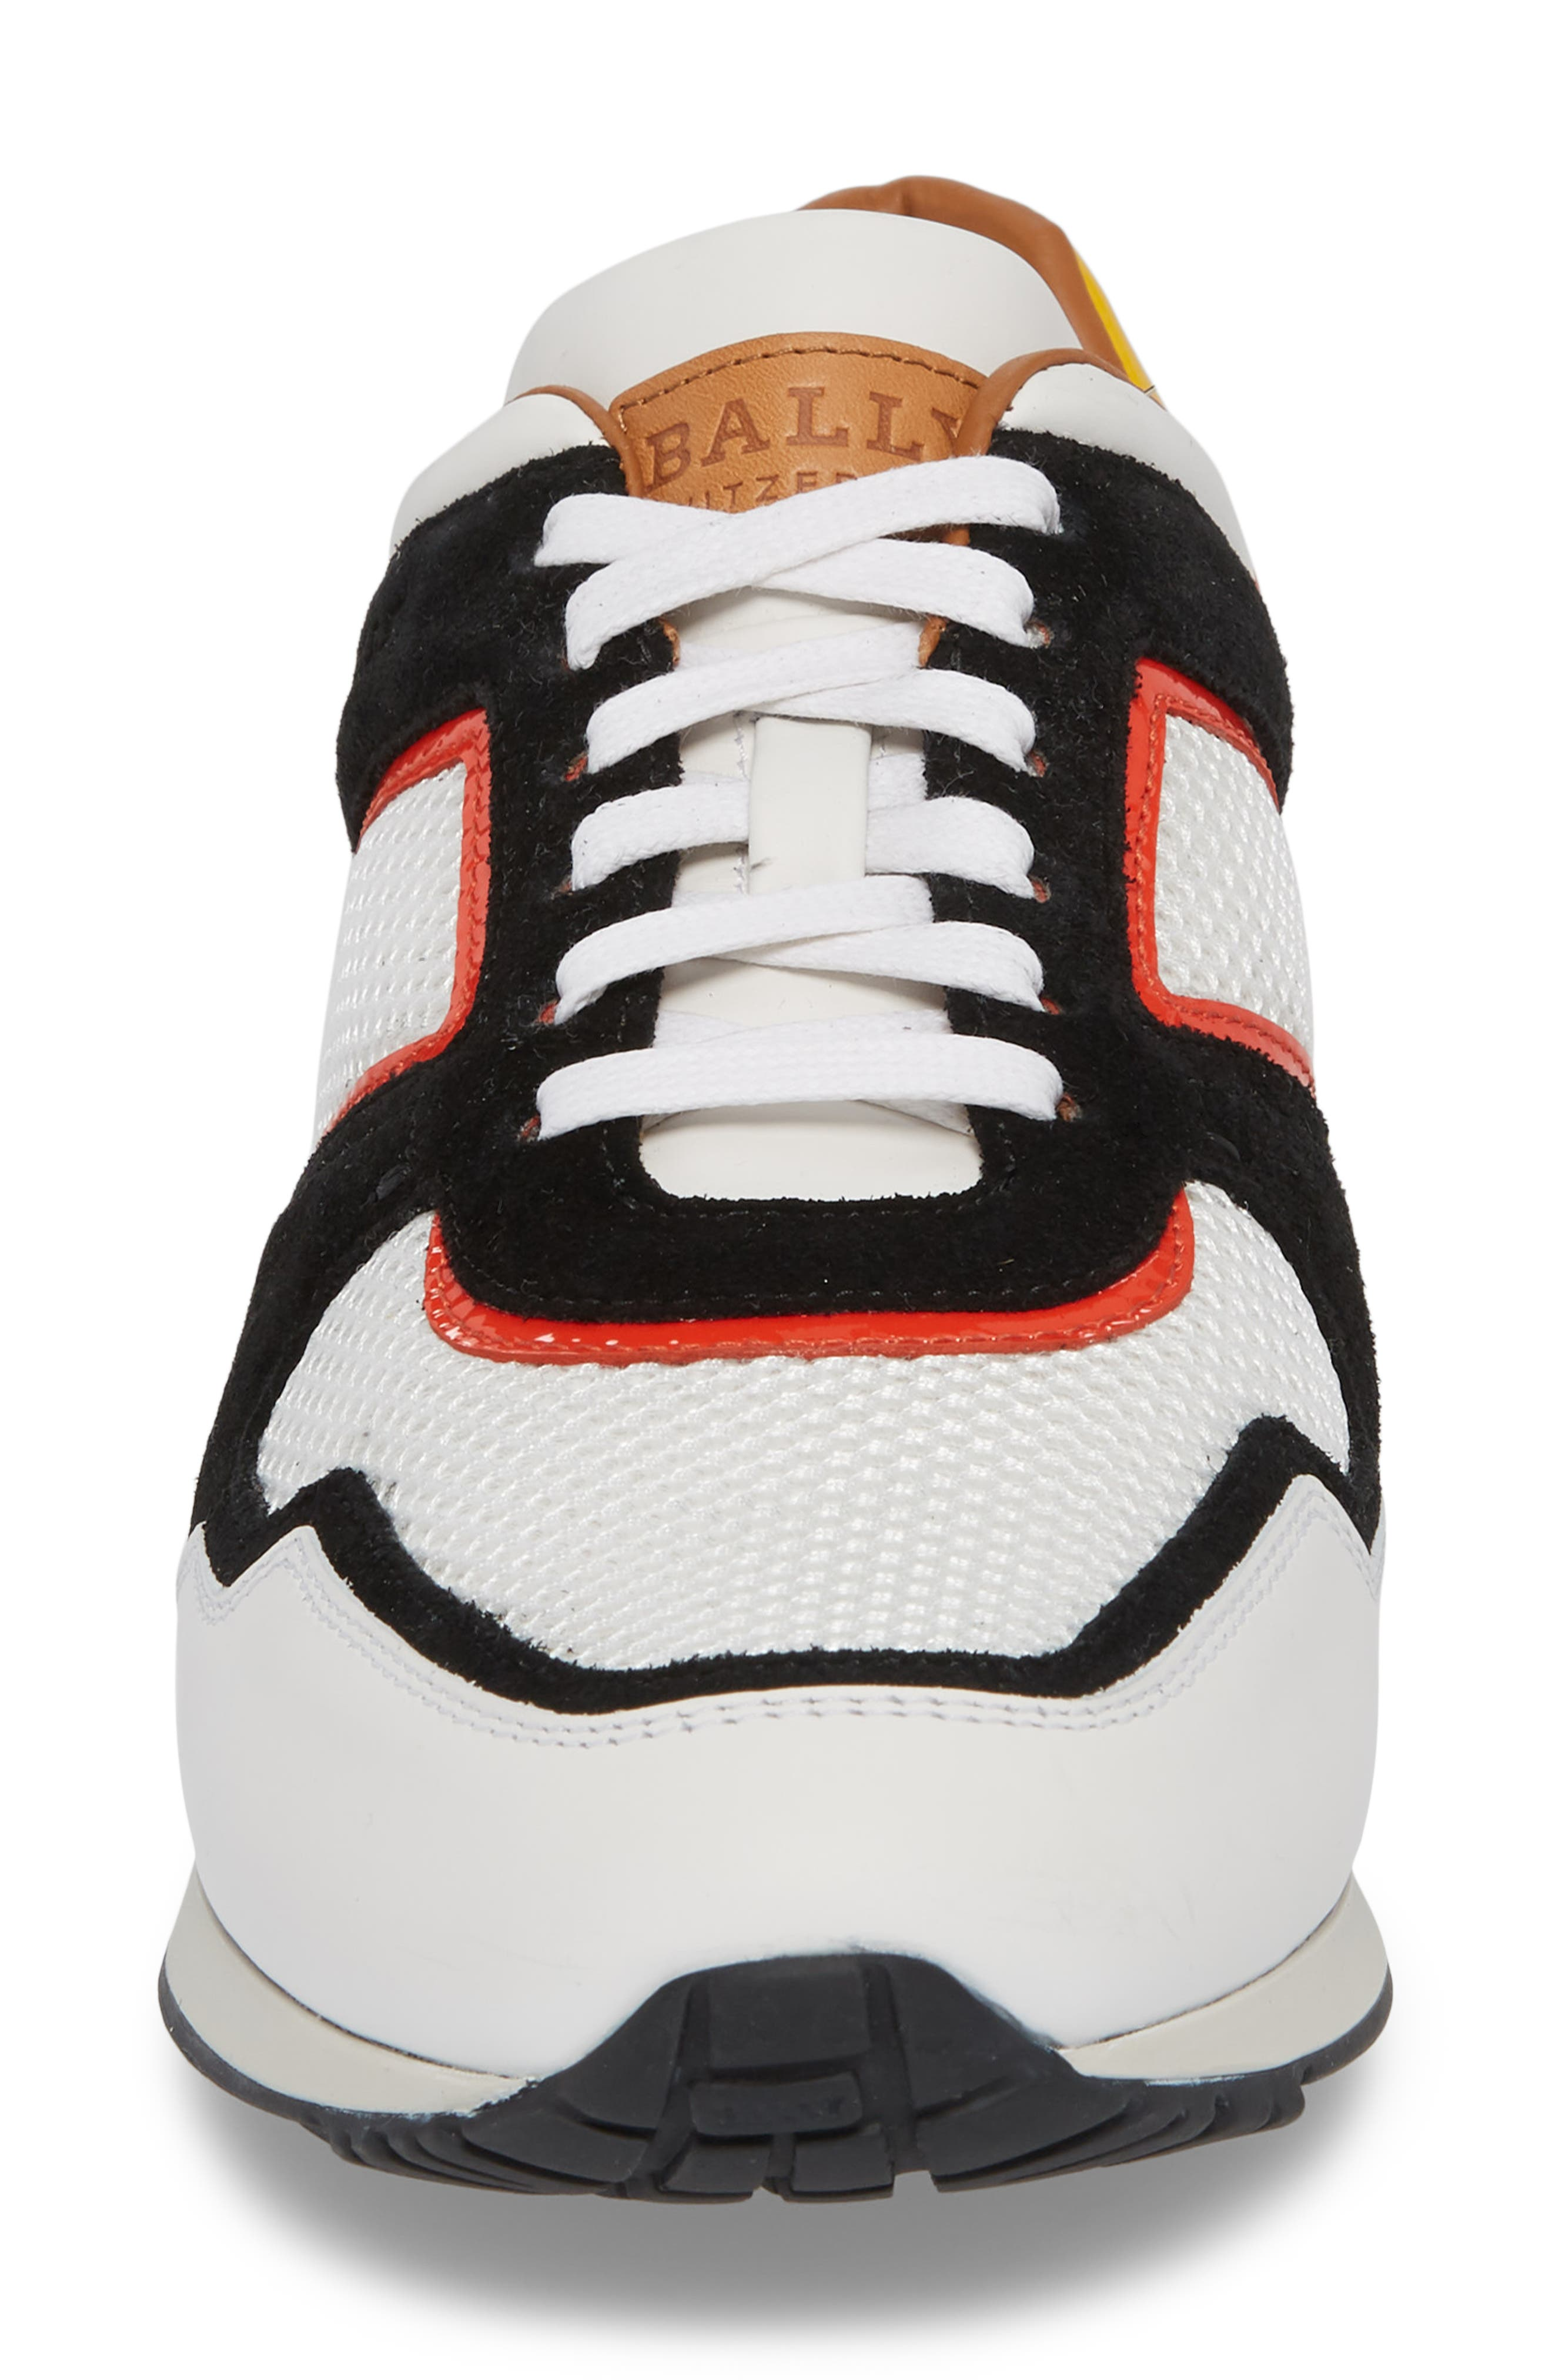 Astreo Low Top Sneaker,                             Alternate thumbnail 4, color,                             109